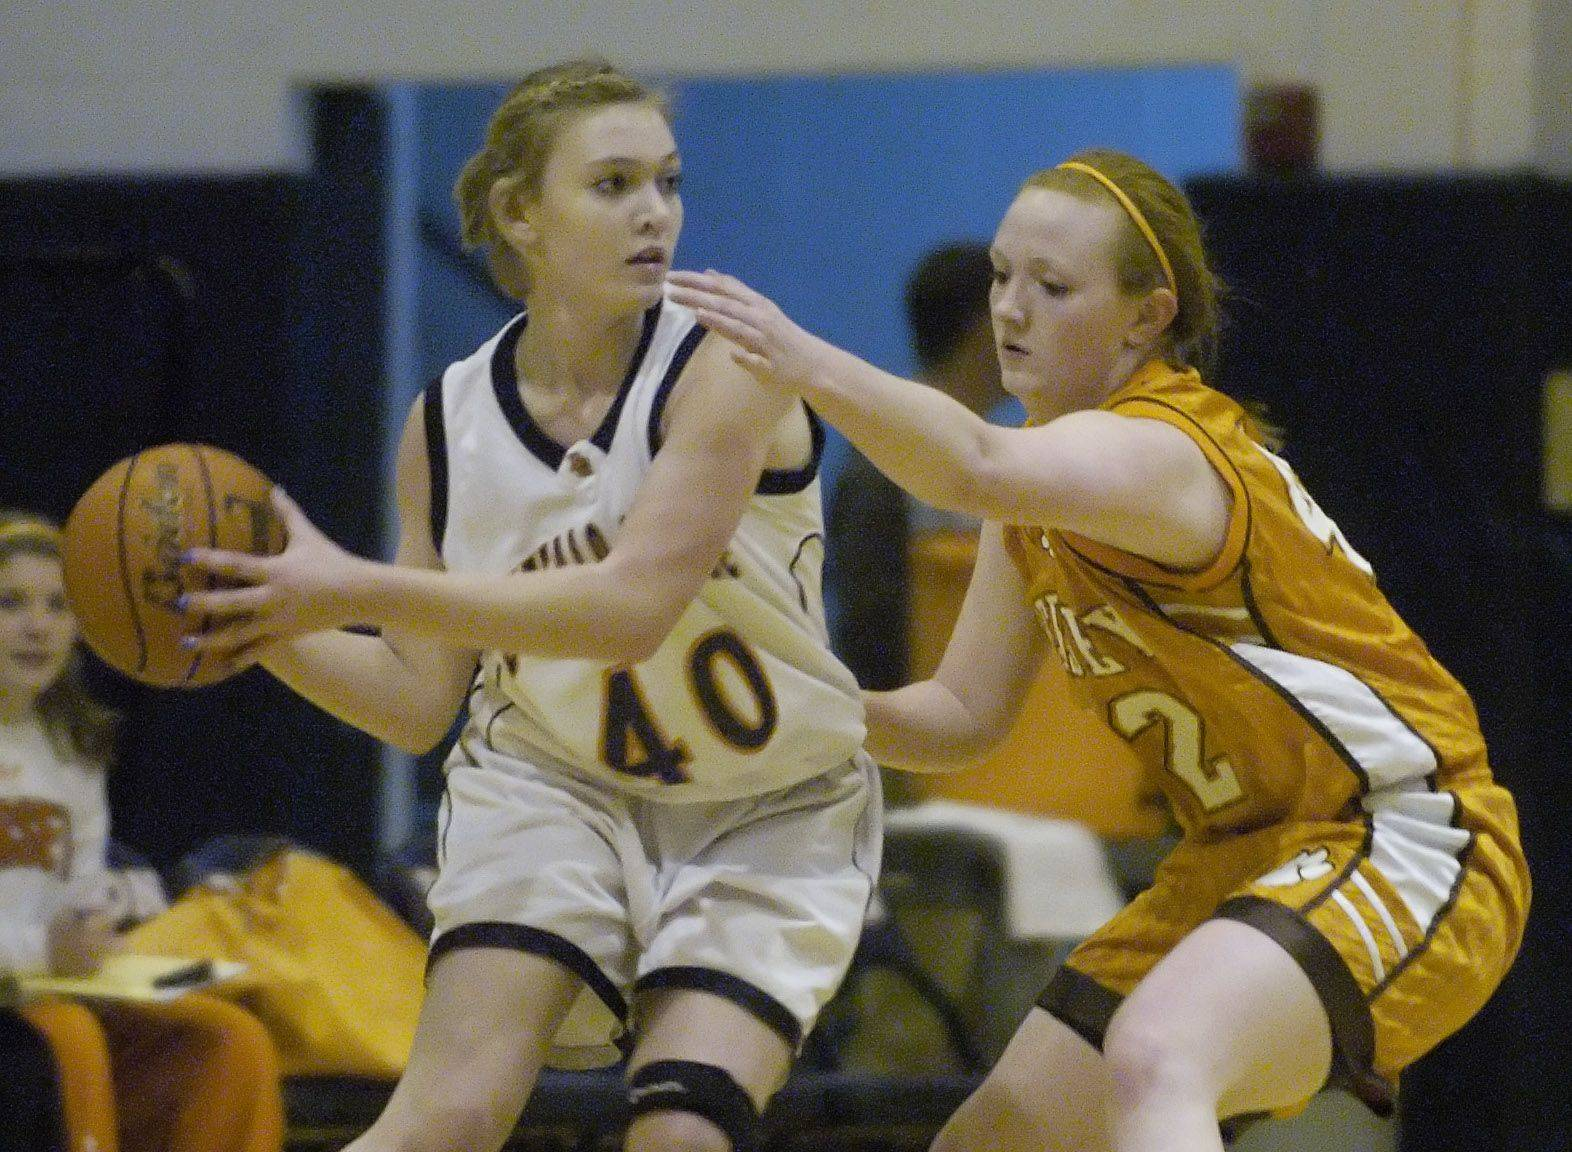 Buffalo Grove's Alanna Zawlocki, left, looks for an open teammate while being guarded by Hersey's Maggie Hogan.